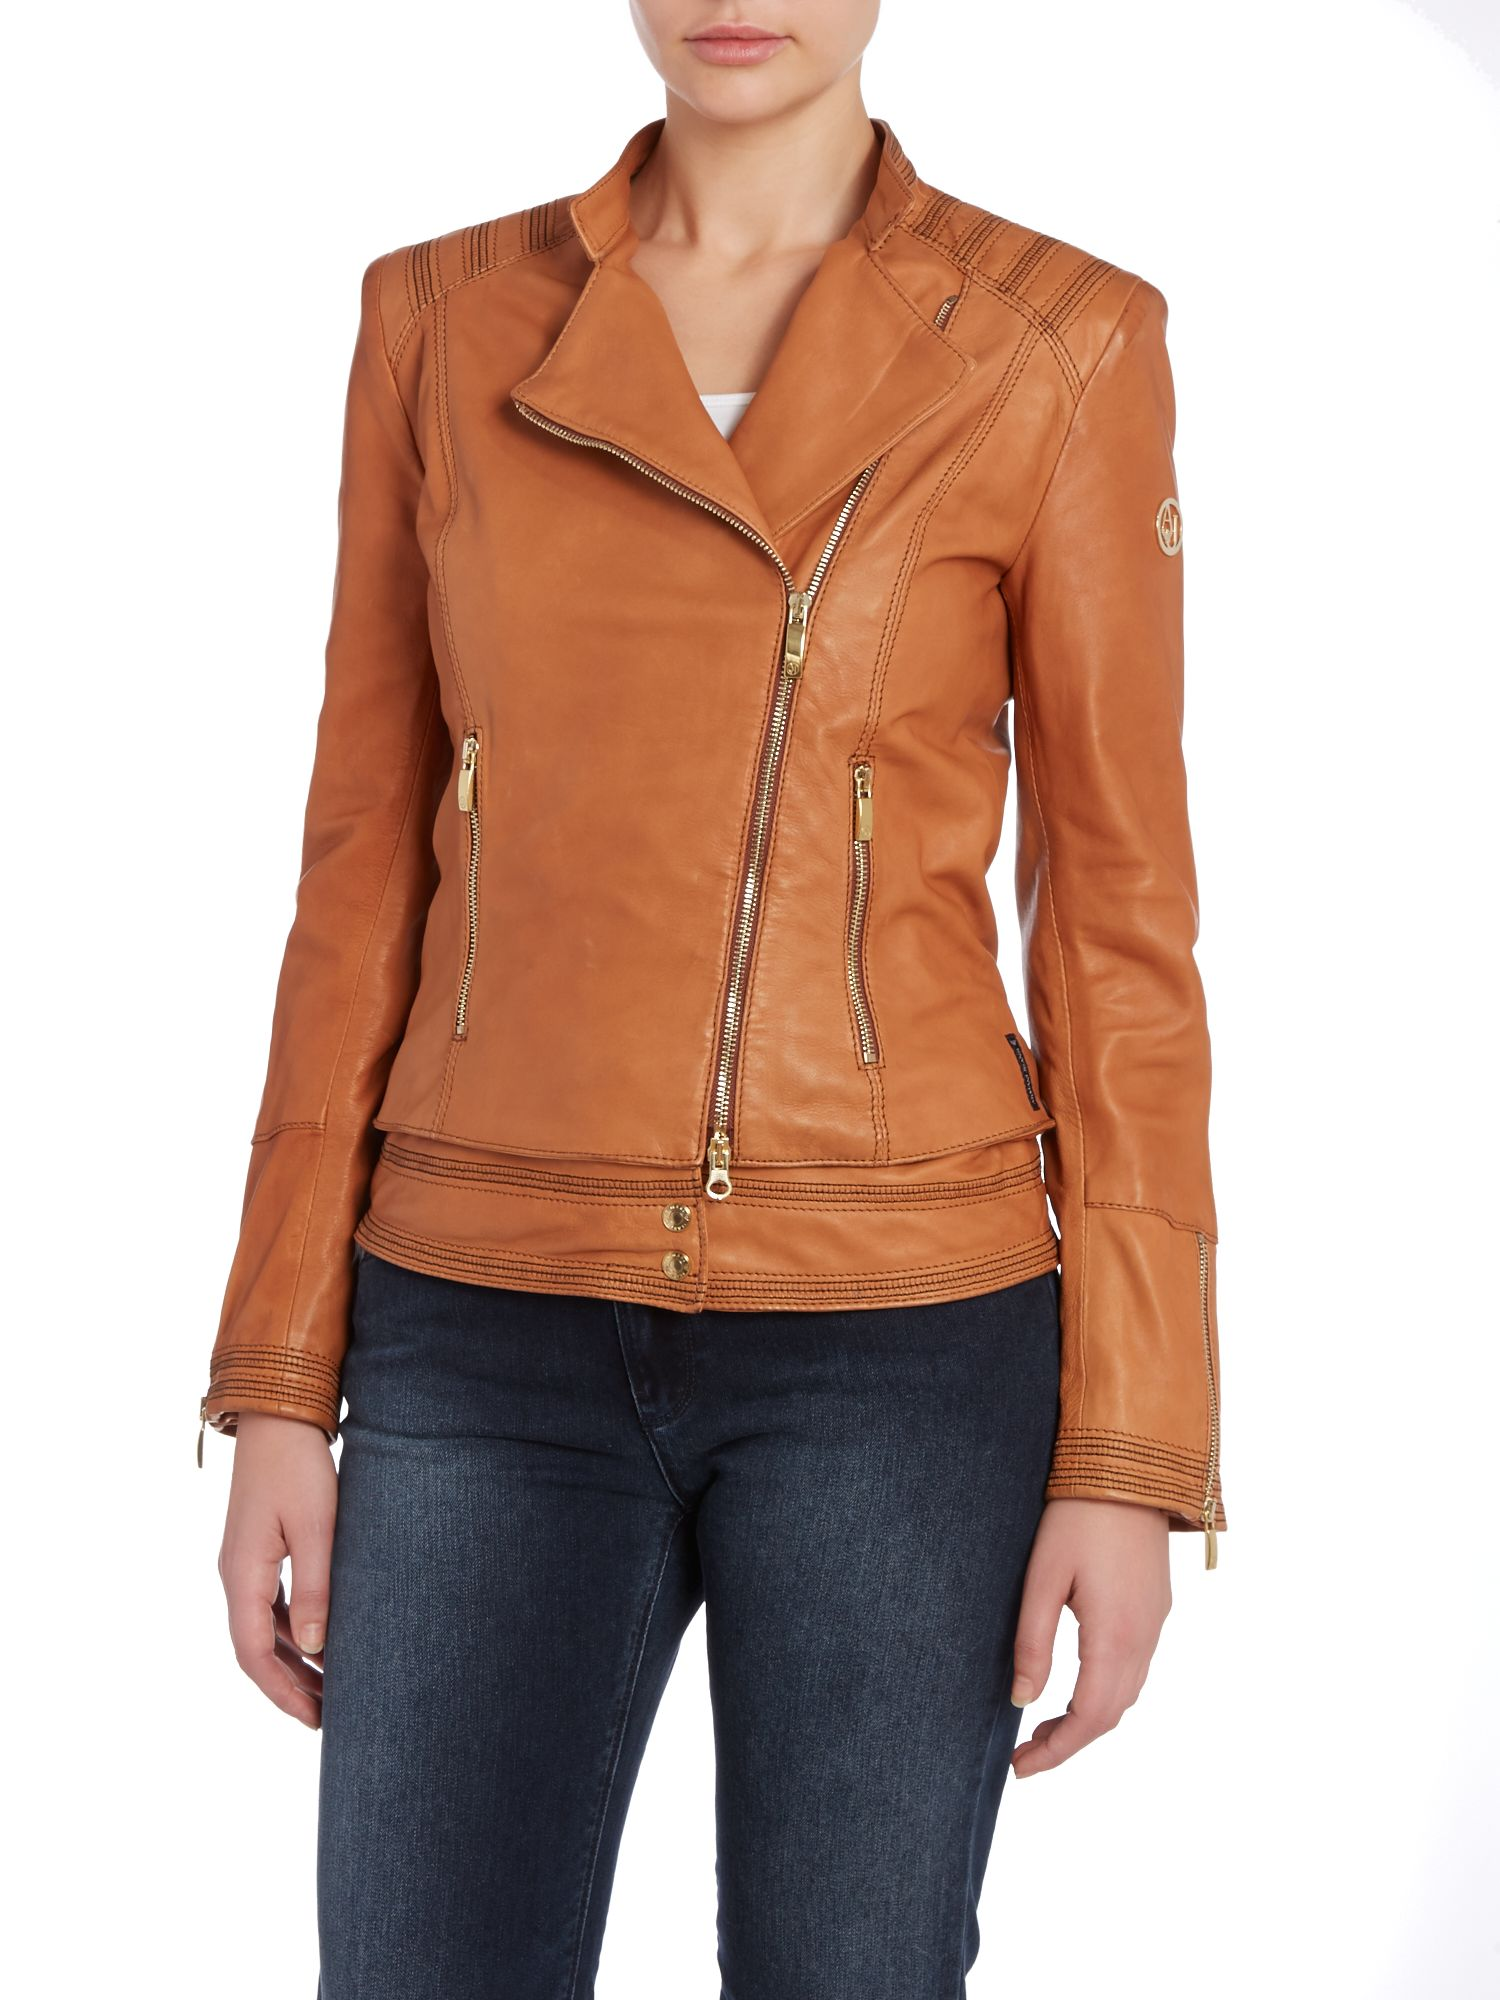 Collarless leather jacket